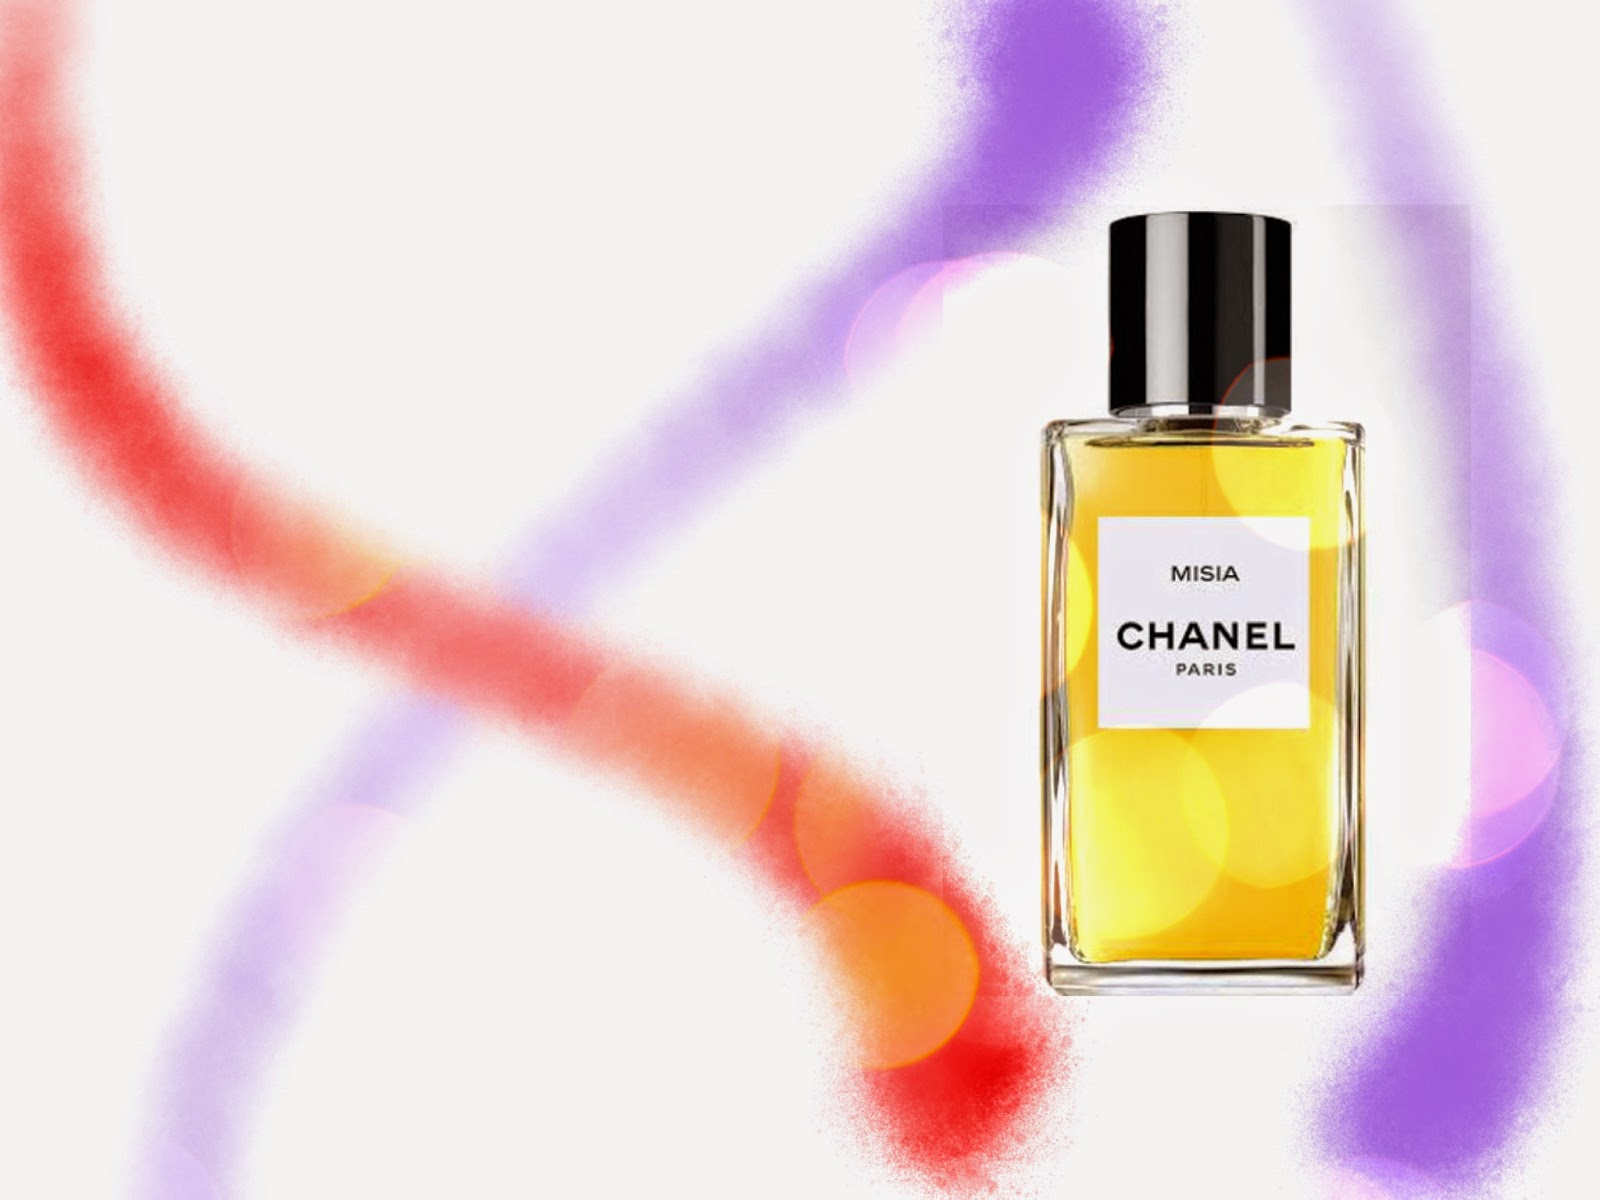 Persolaise A Perfume Blog Persolaise Review Misia From Chanel